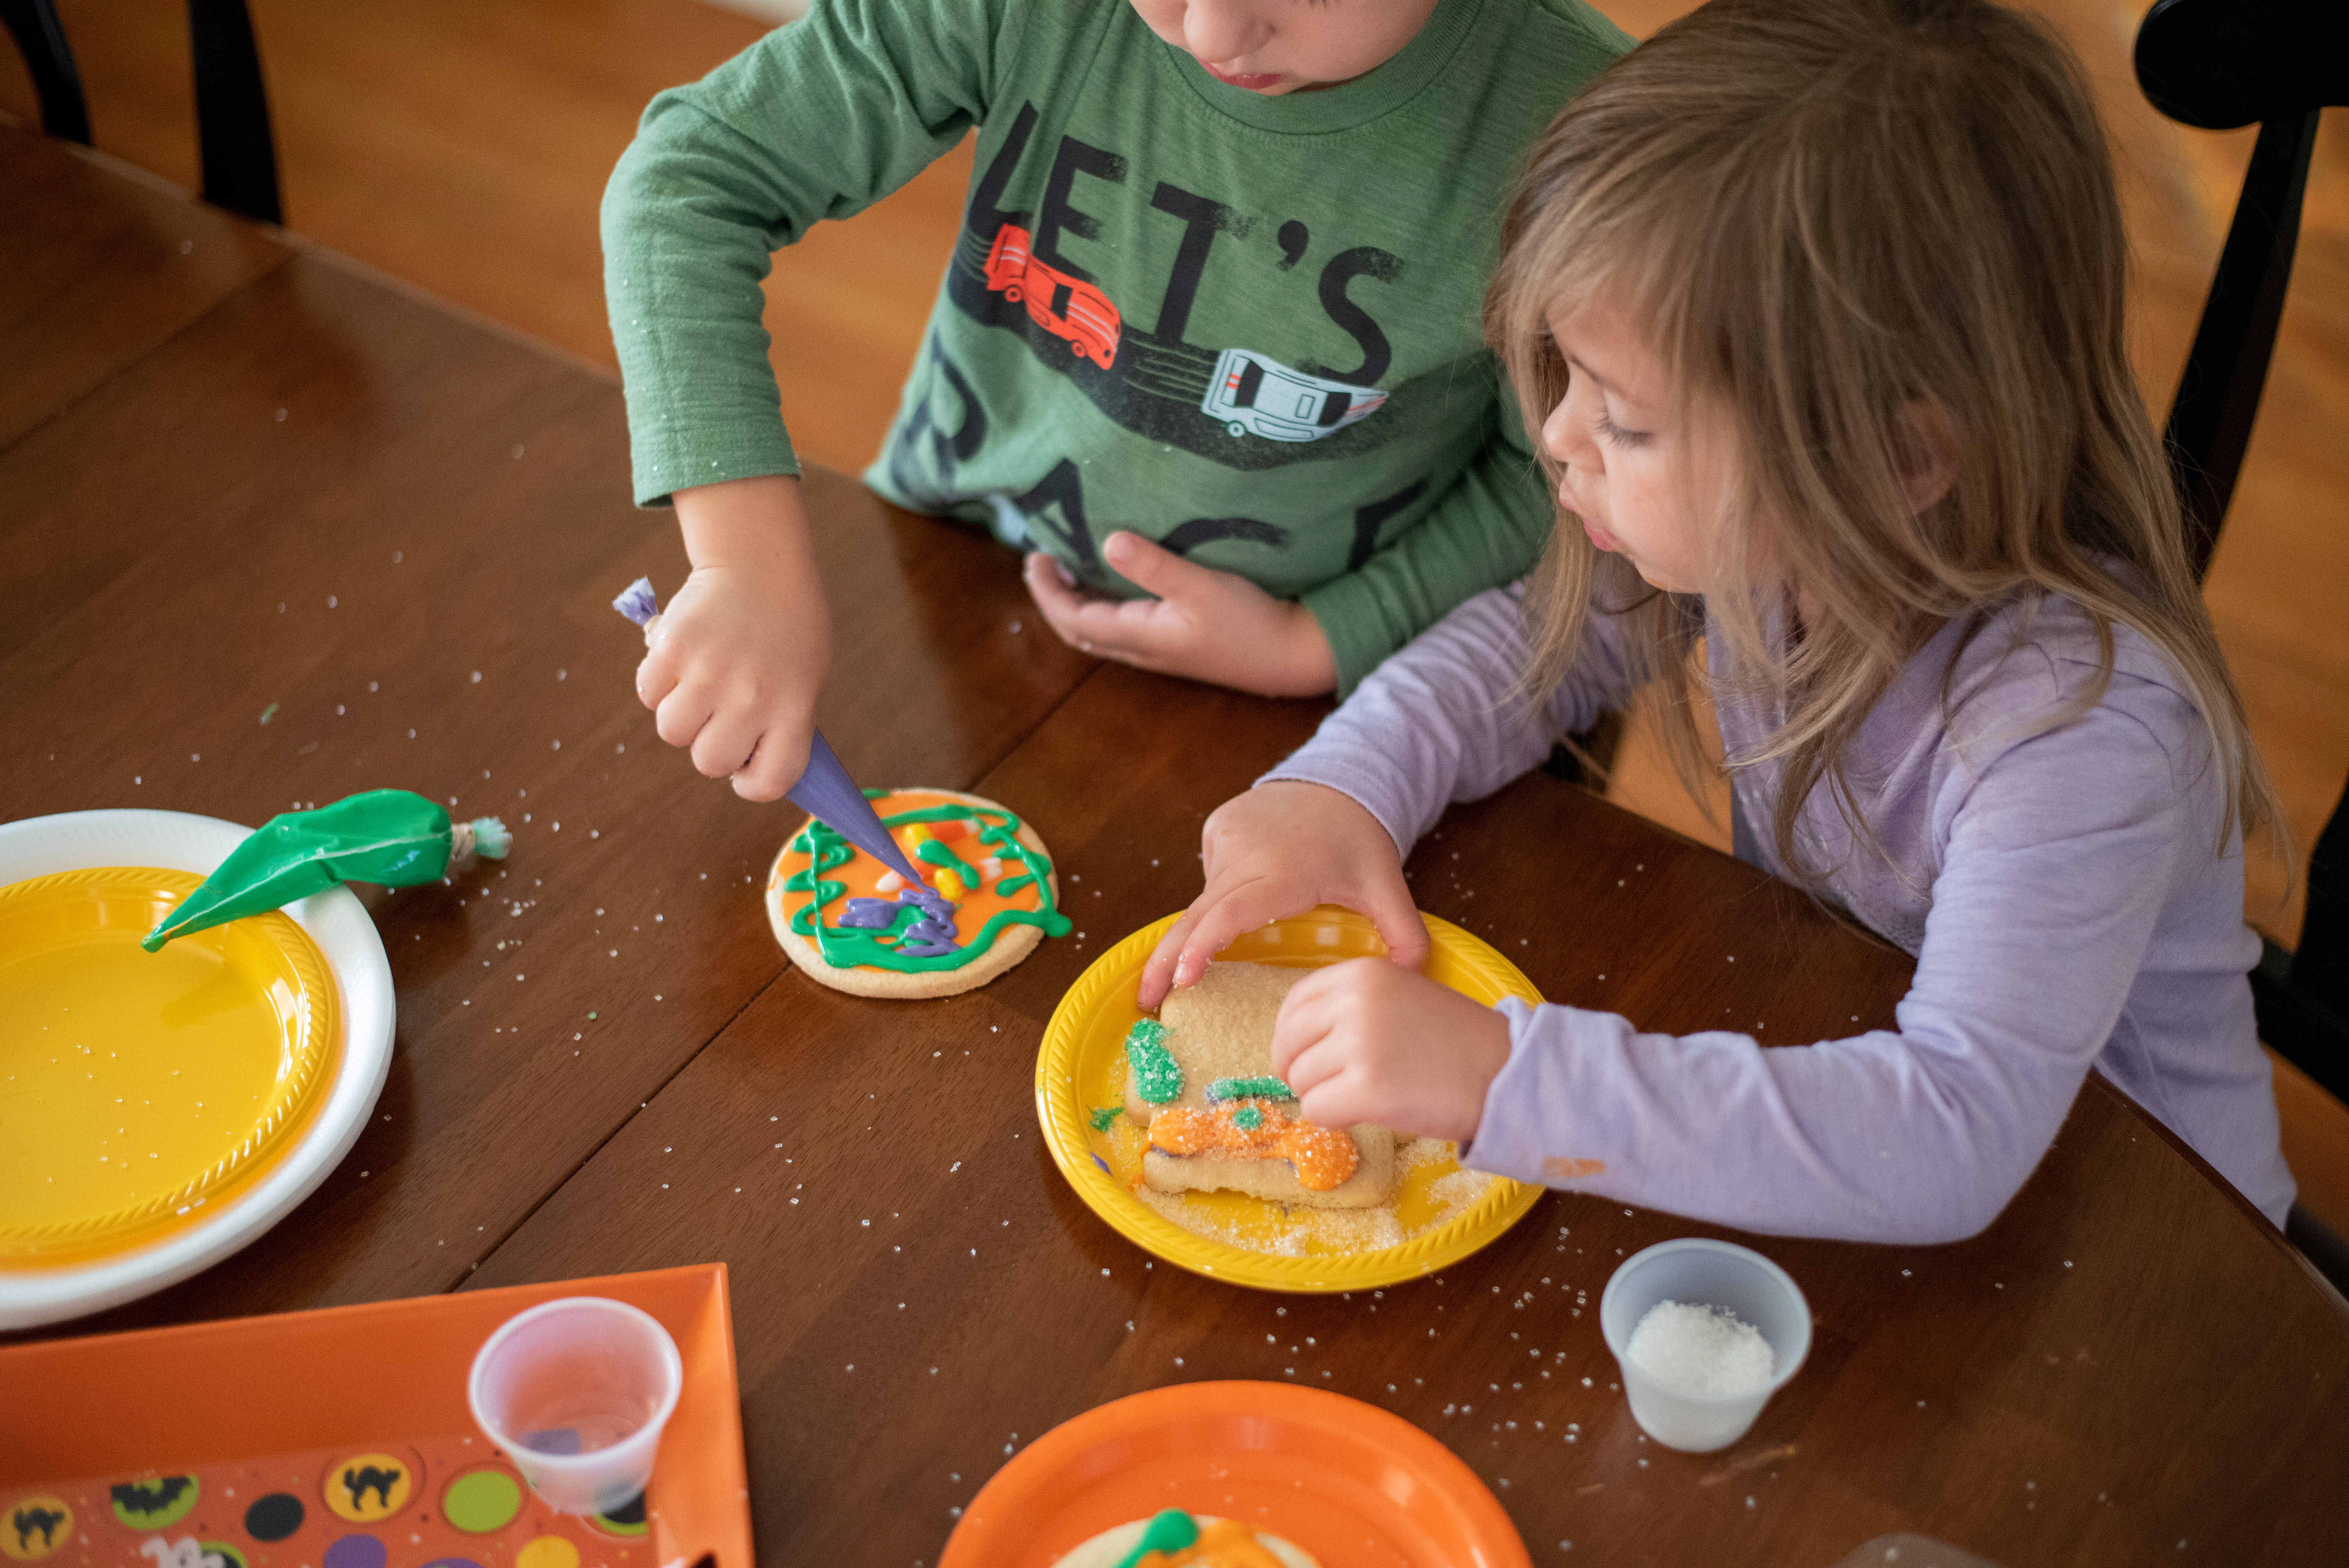 Smiley Cookie Decorating Kits